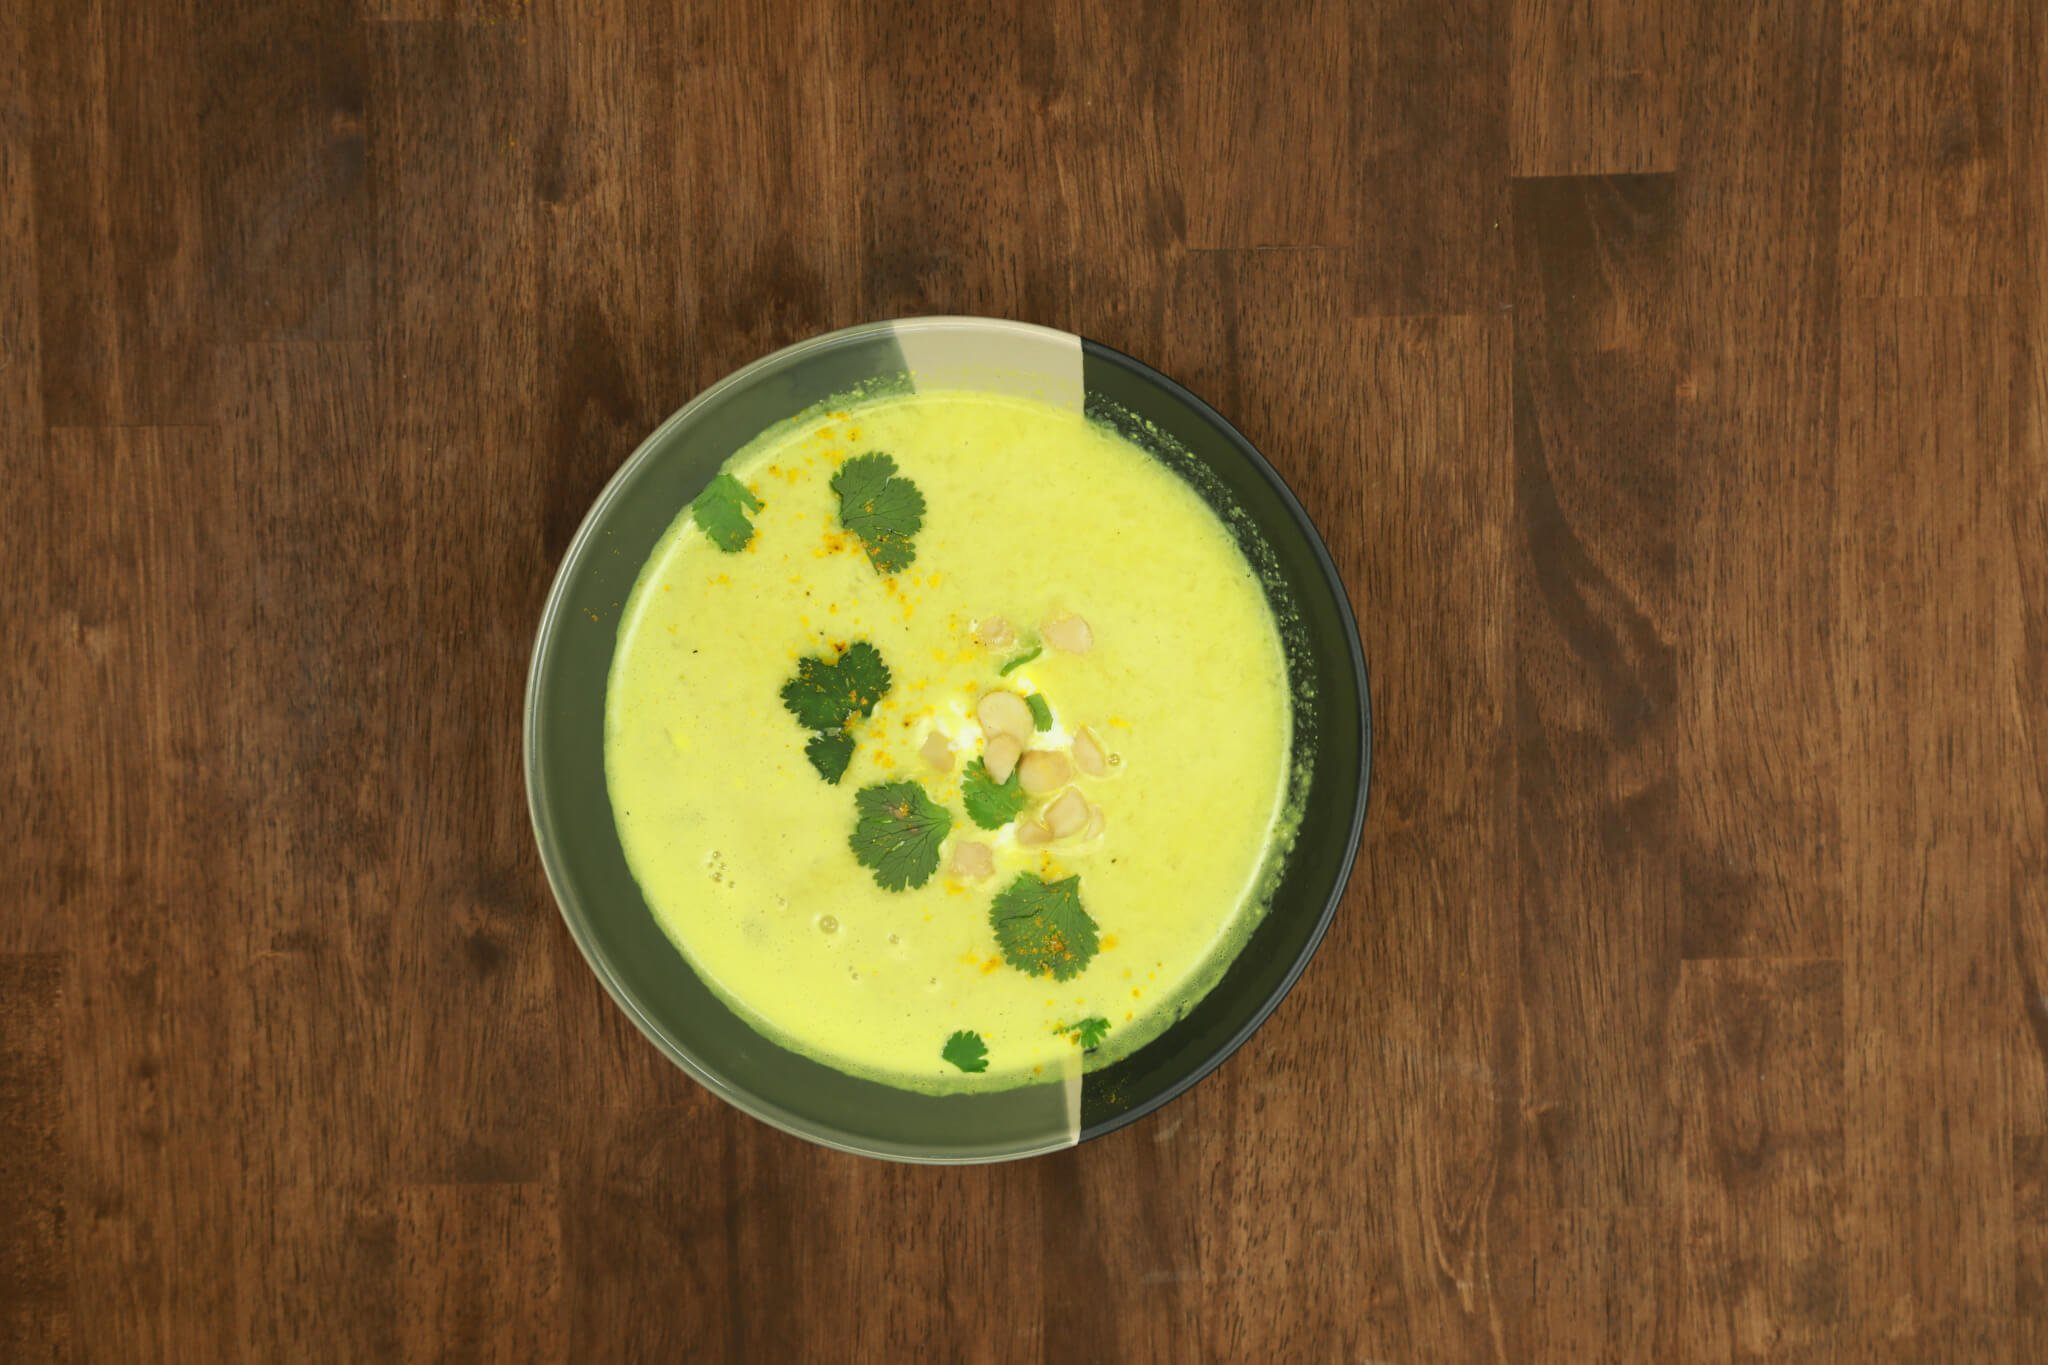 Dr. Gundry's Vegan Curry Cauliflower Soup Recipe